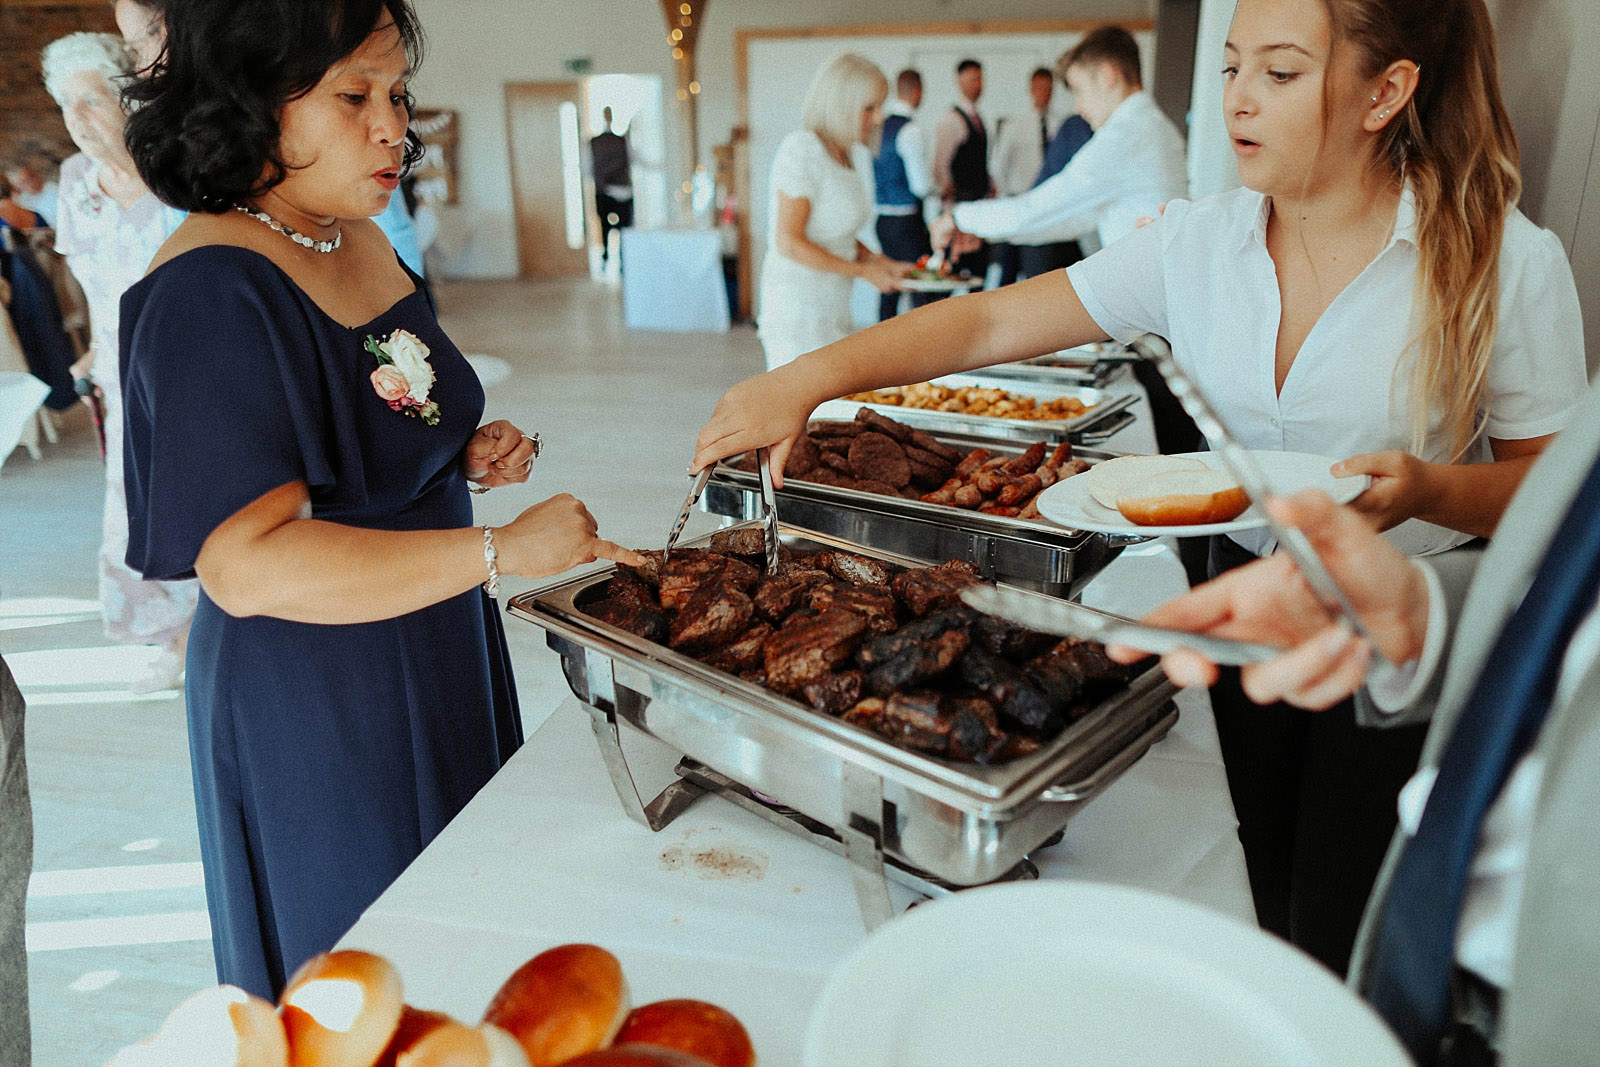 BBQ food being served during wedding